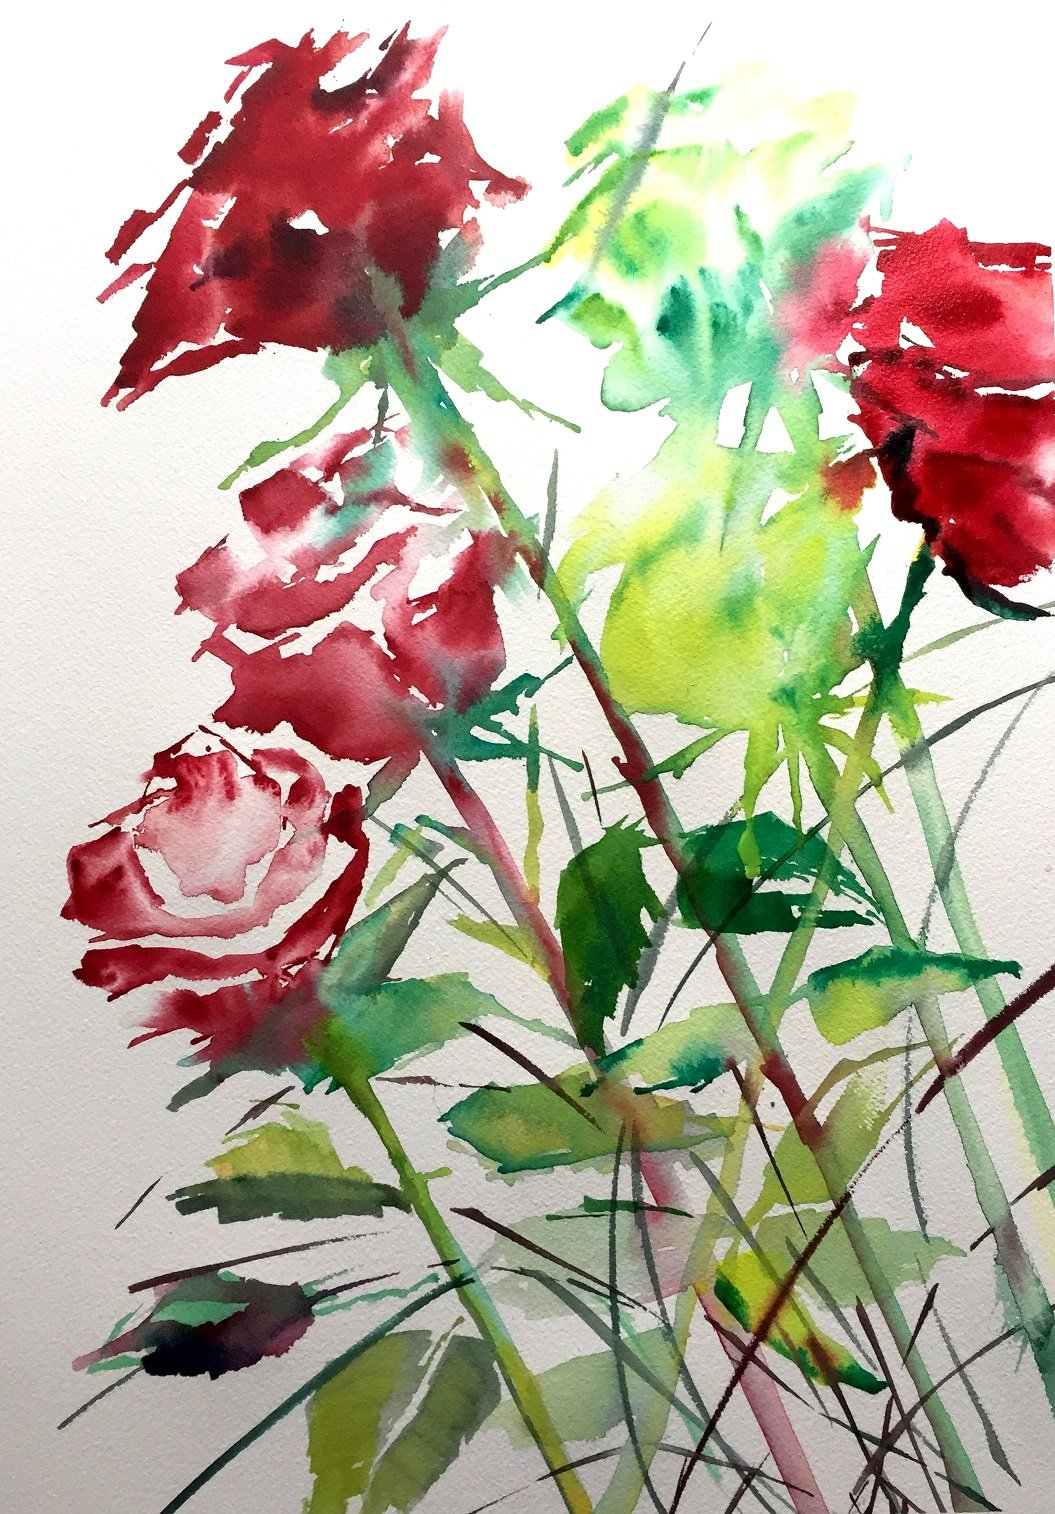 Winter Roses 1 Water colour 56 x 31 cm 300gms Arches